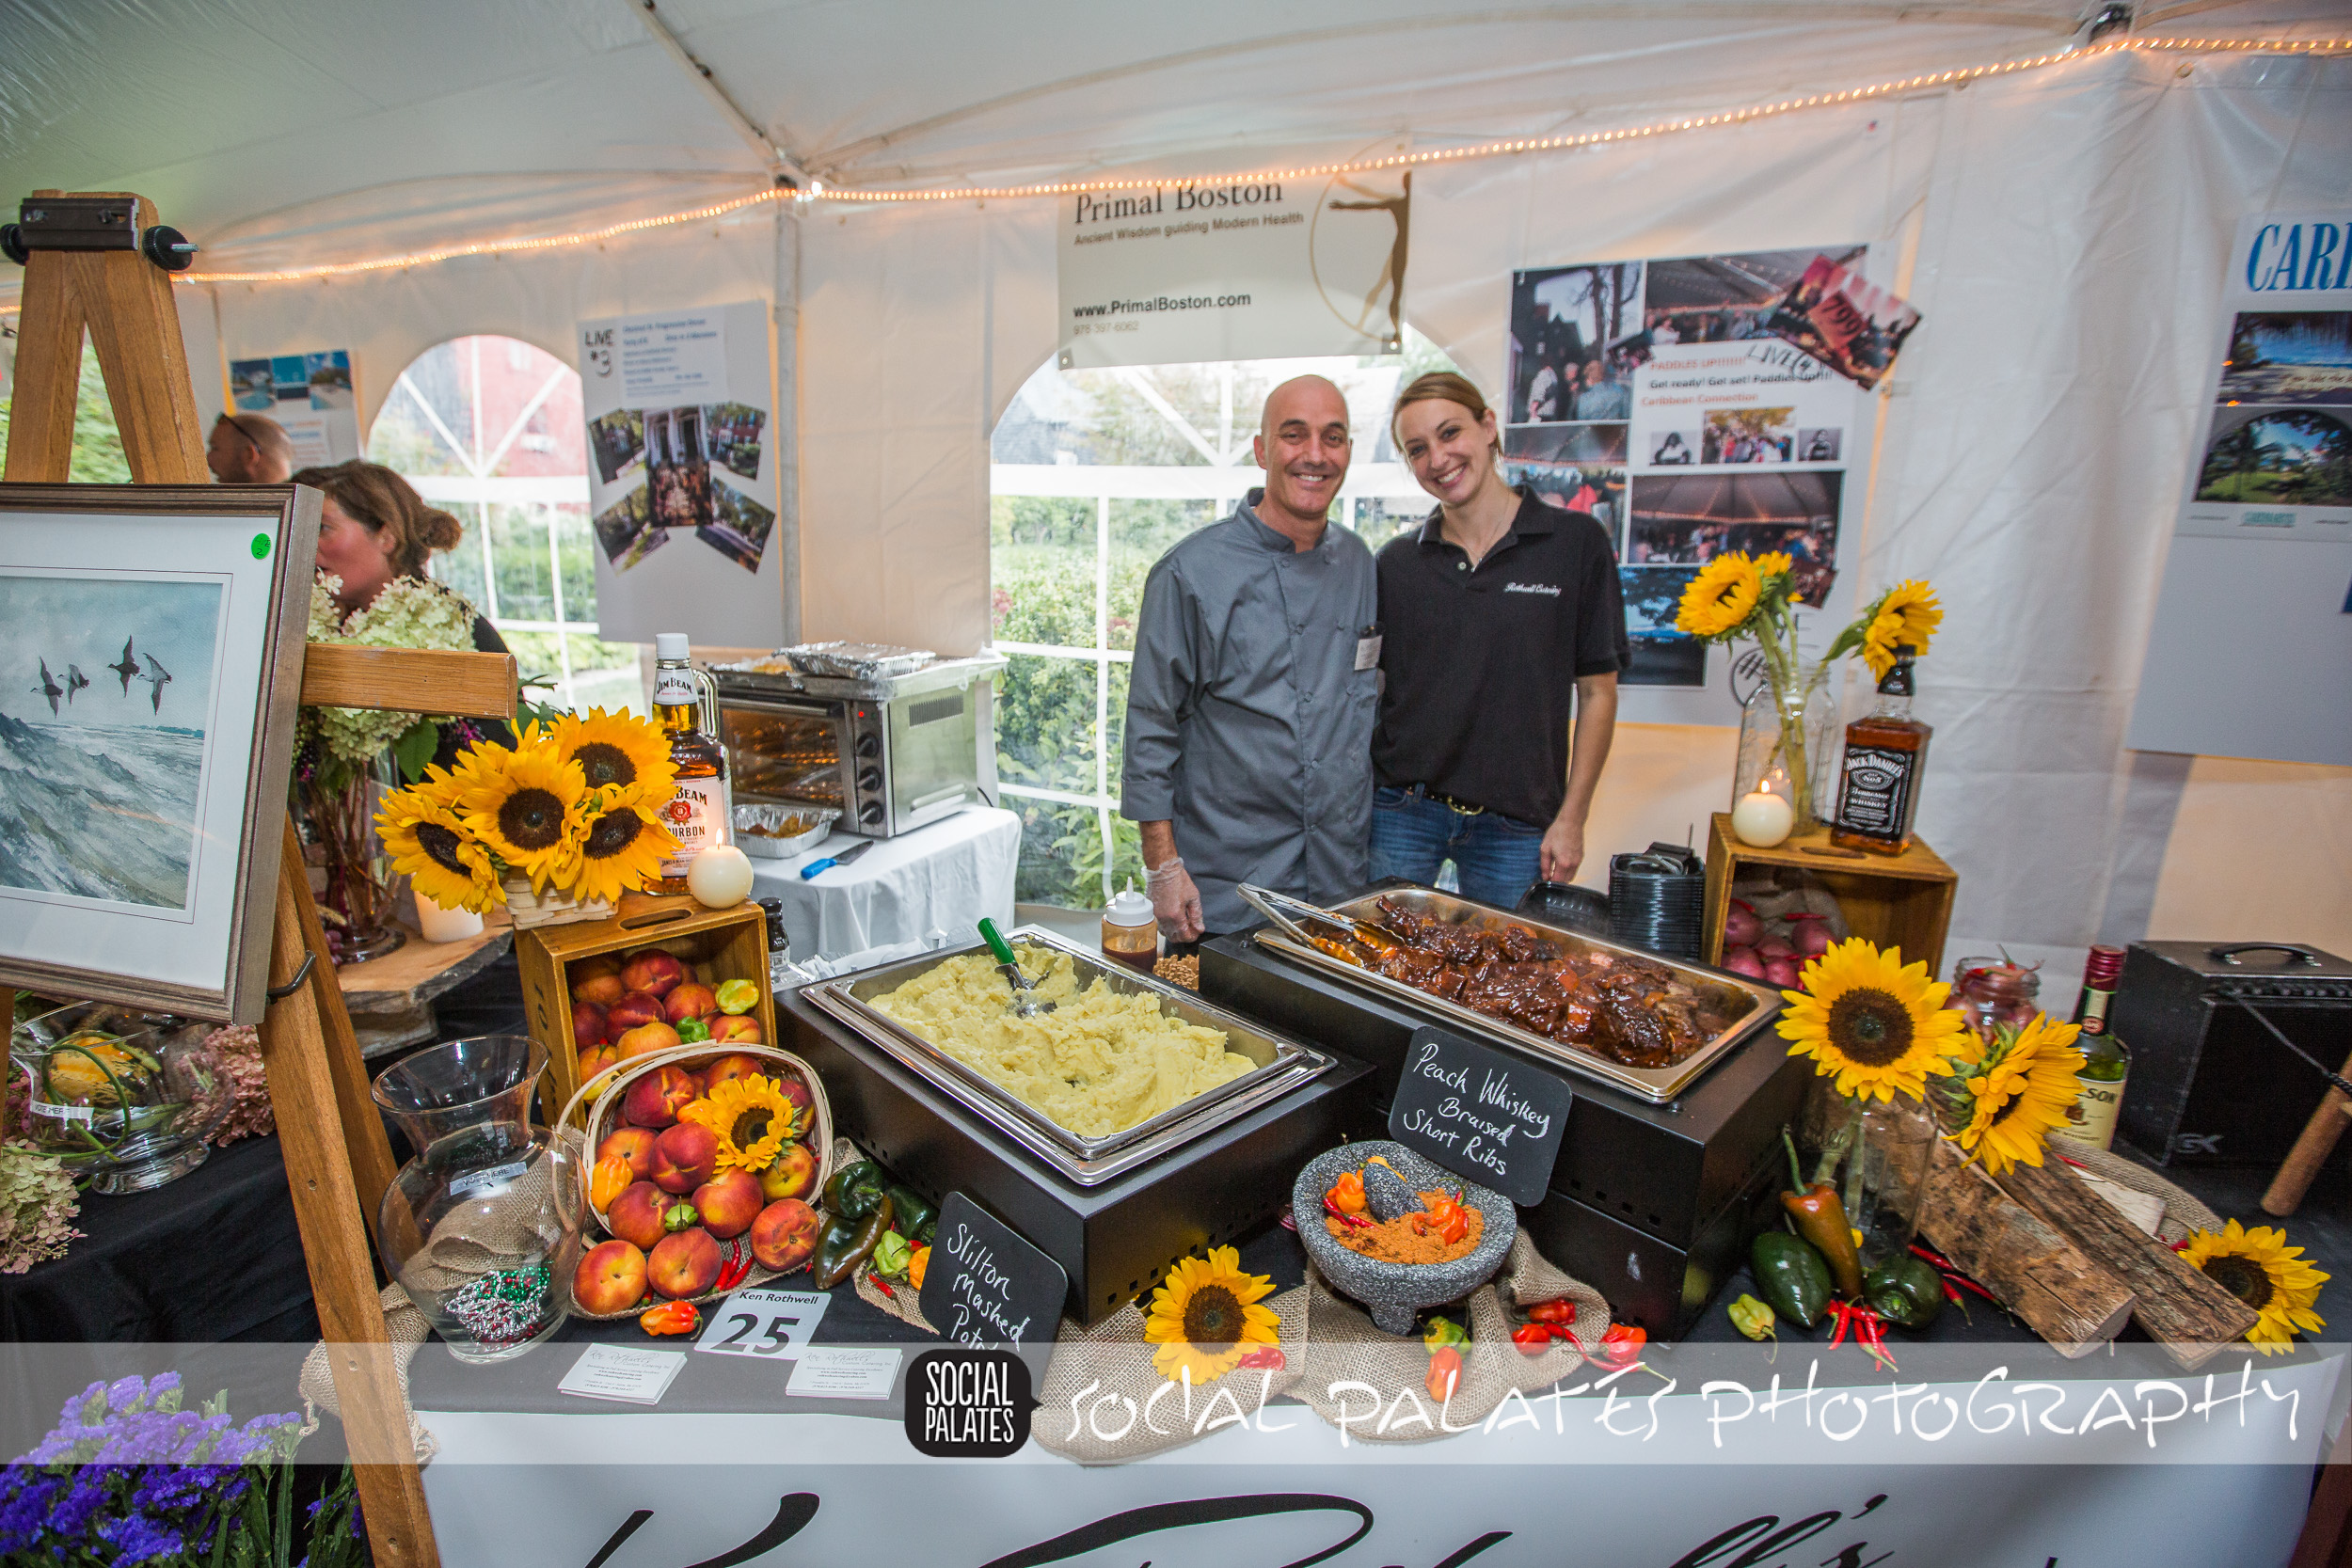 Taste_of_the_gables_2014-4630.jpg